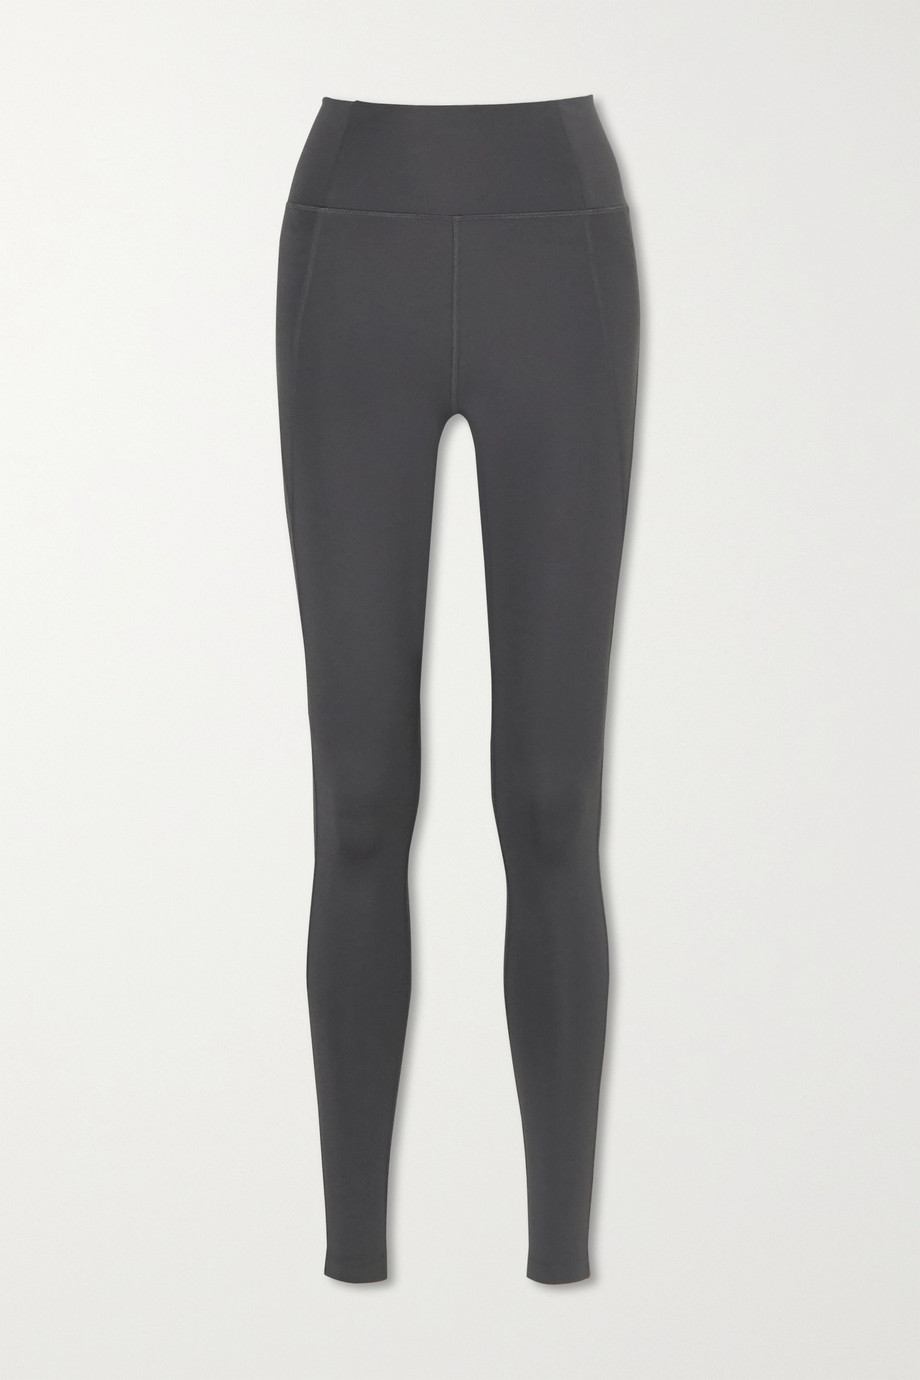 Girlfriend Collective + NET SUSTAIN Compressive Stretch-Leggings